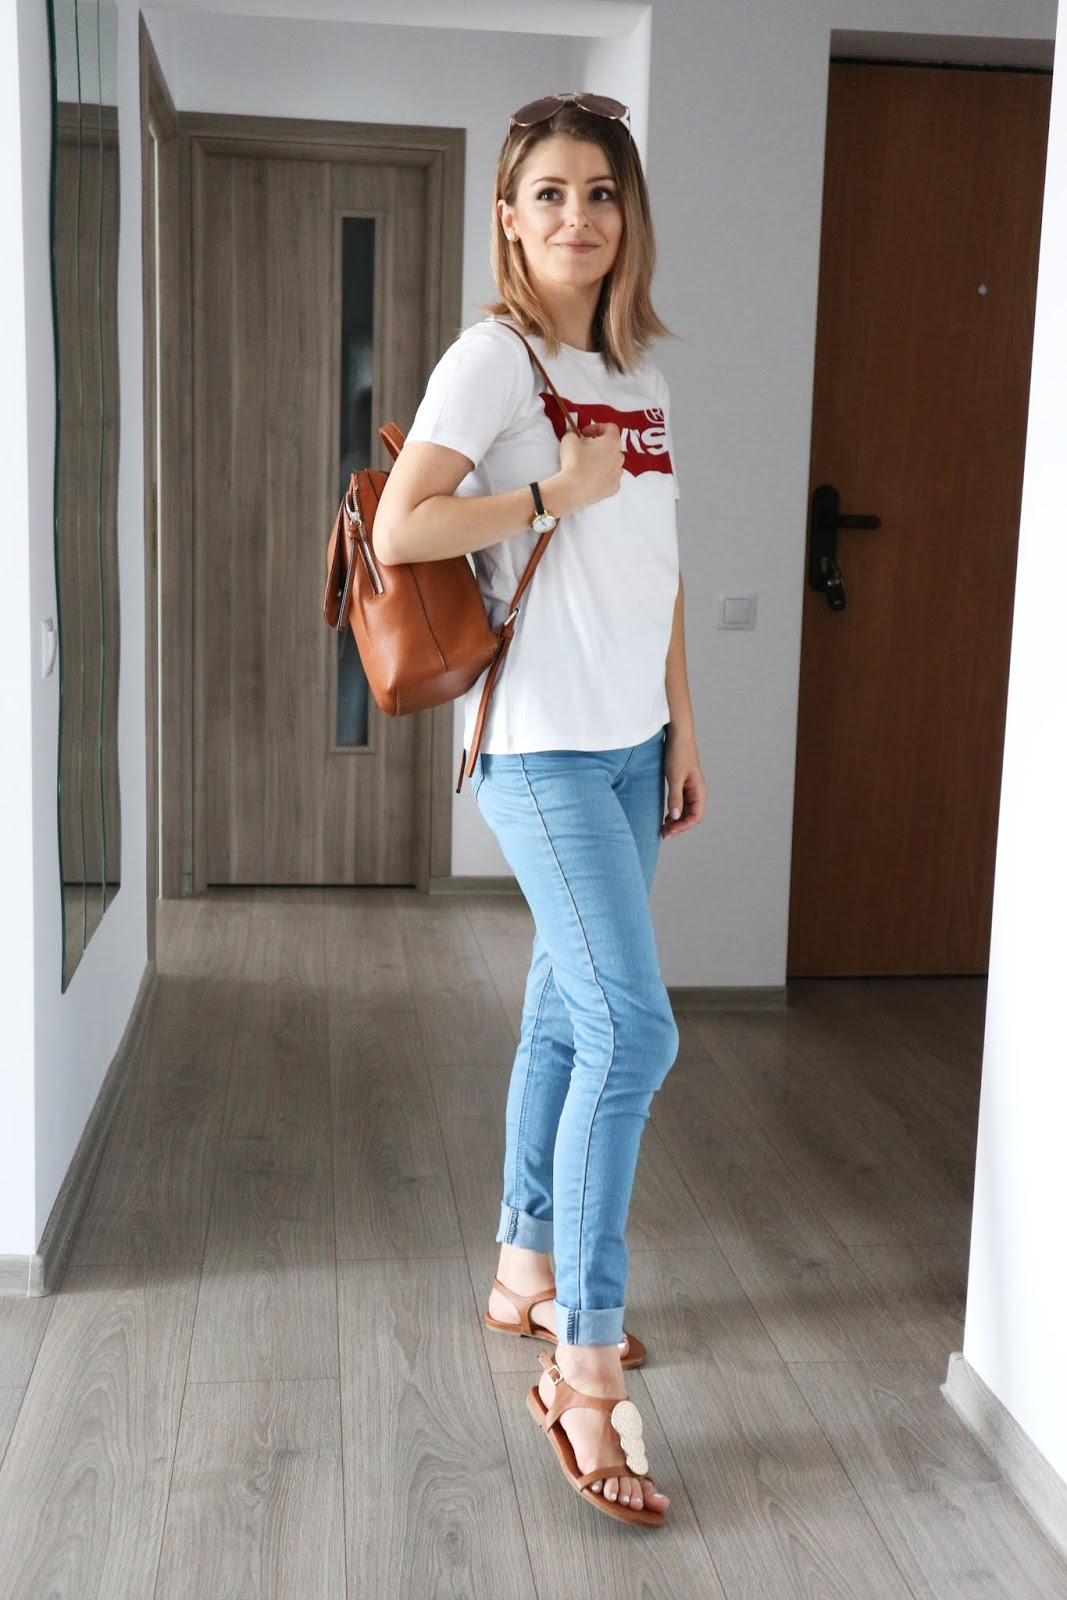 Levi's t-shirt with light wash jeans and sandals